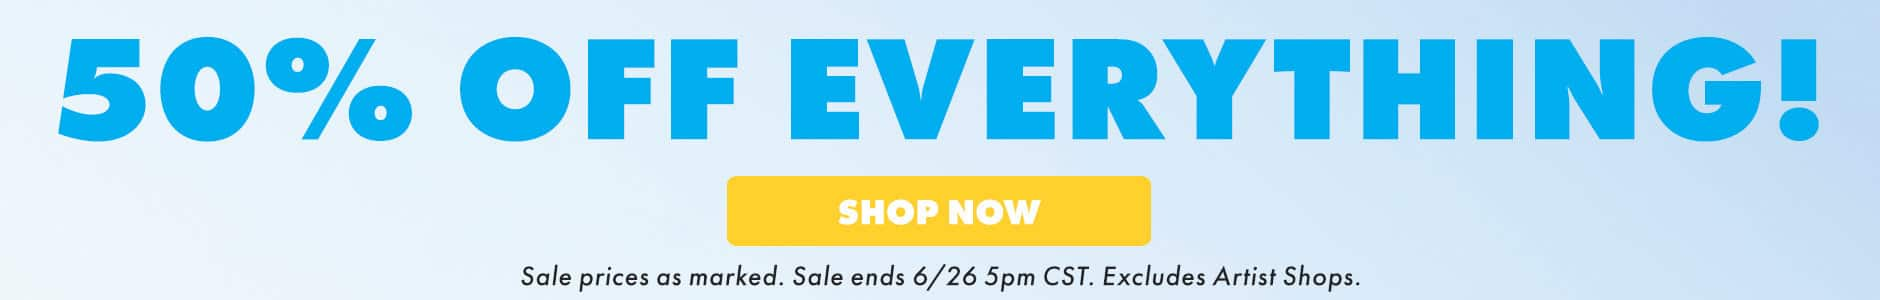 50% off everything. Shop now! Sale prices as marked. Sale ends 6/26 5PM CST. Excludes Artist Shops.